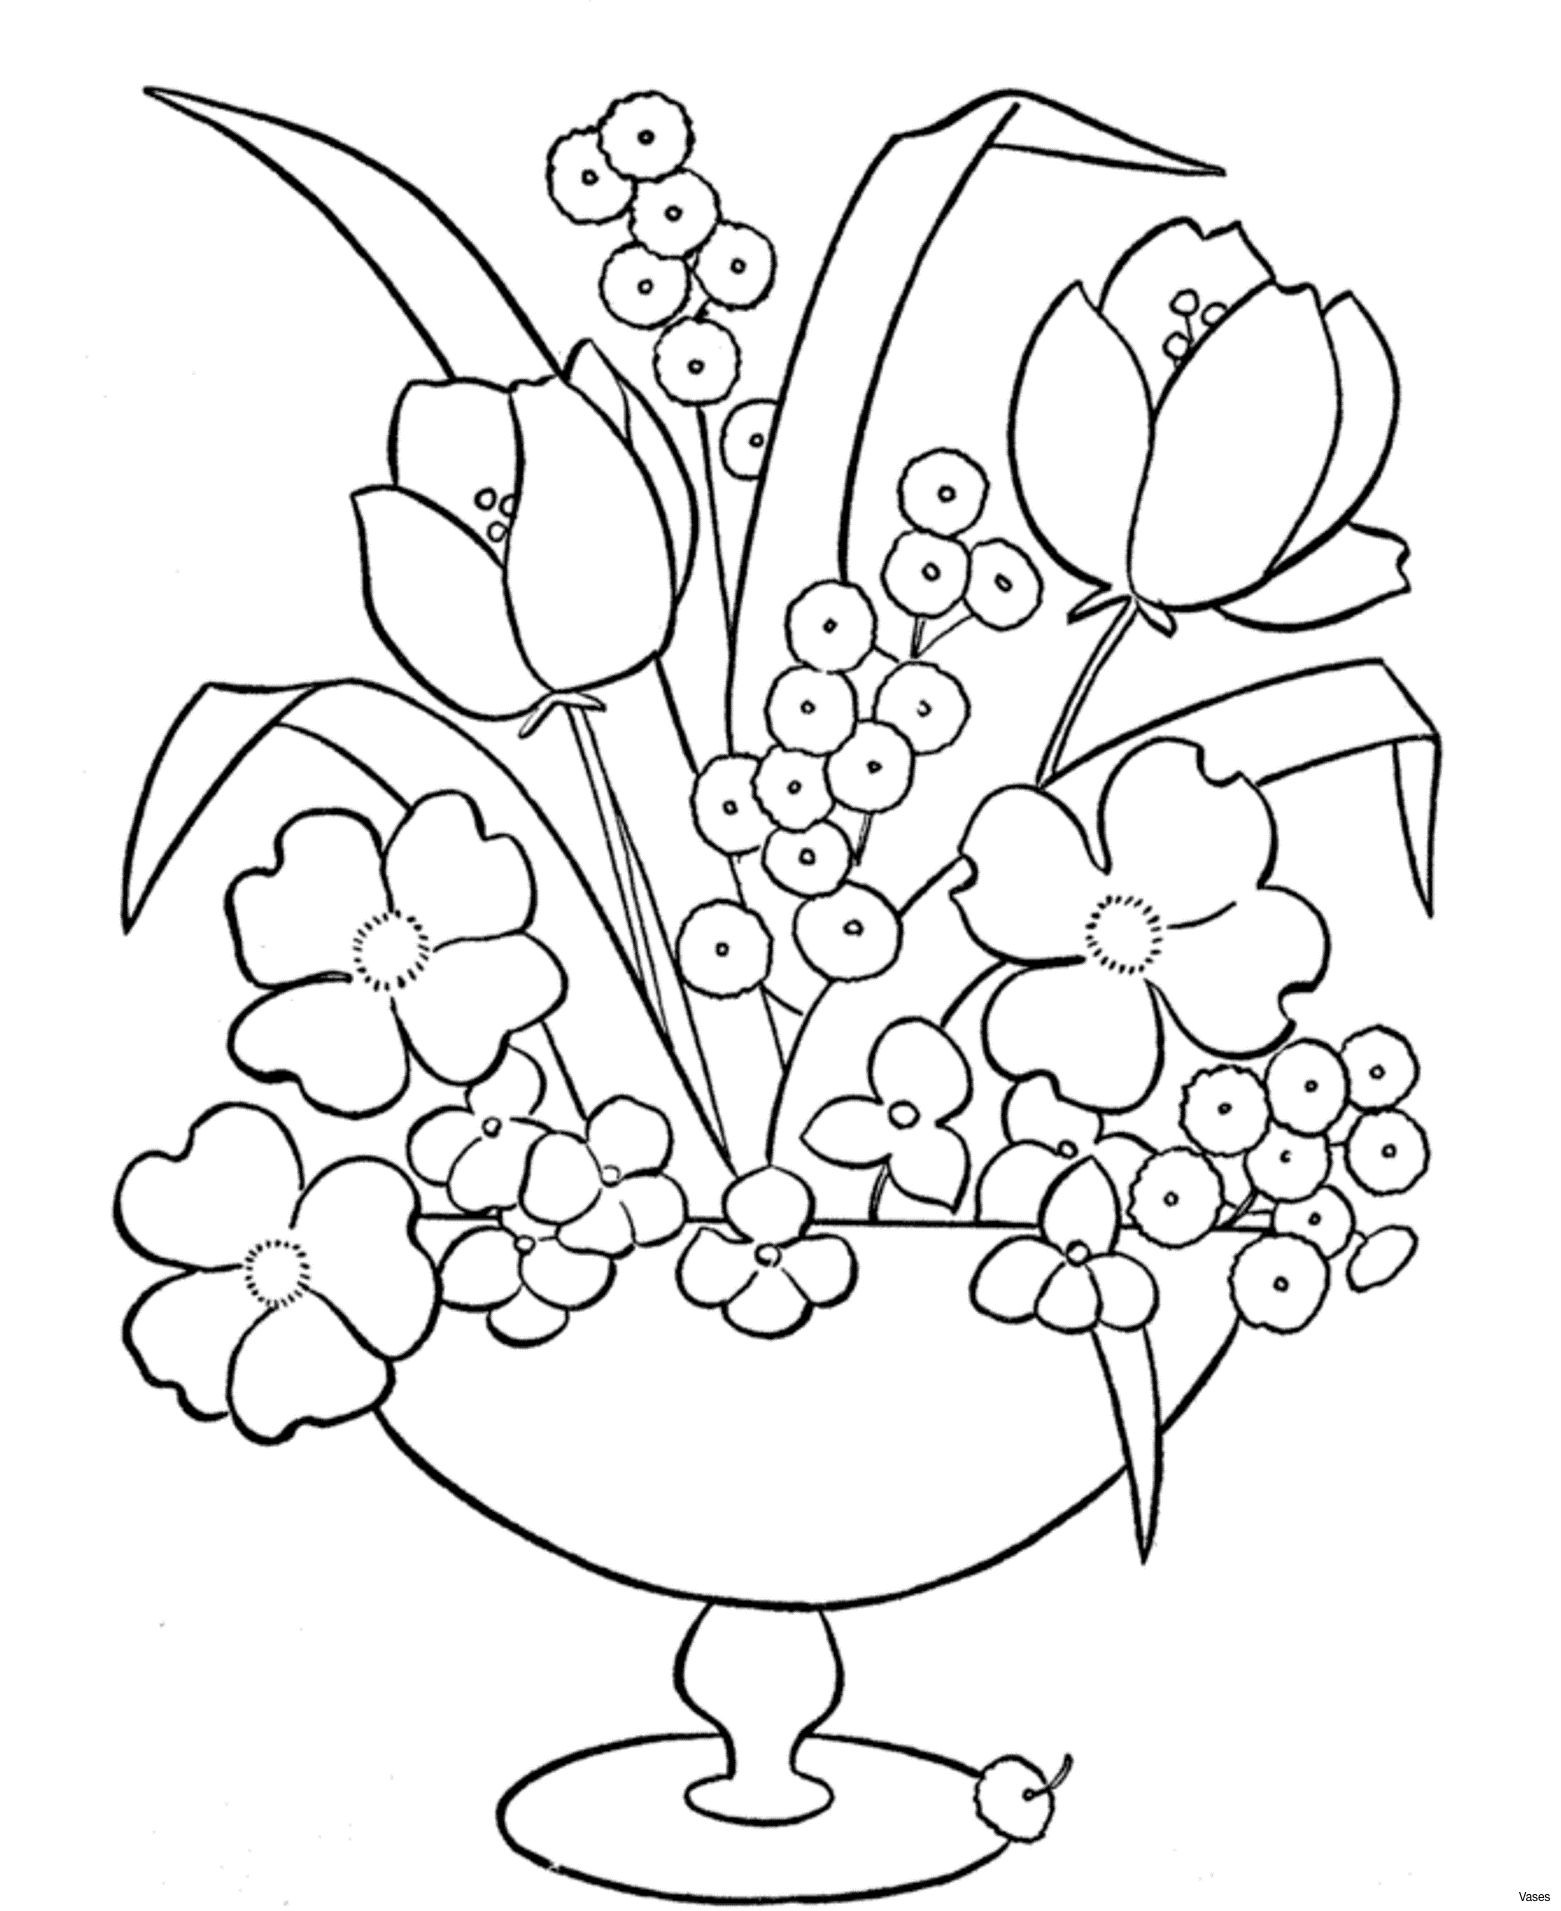 Empty Vase Florist Los Angeles Ca Of 23 Flowers In A Vase the Weekly World Inside Cool Vases Flower Vase Coloring Page Pages Flowers In A top I 0d Ruva